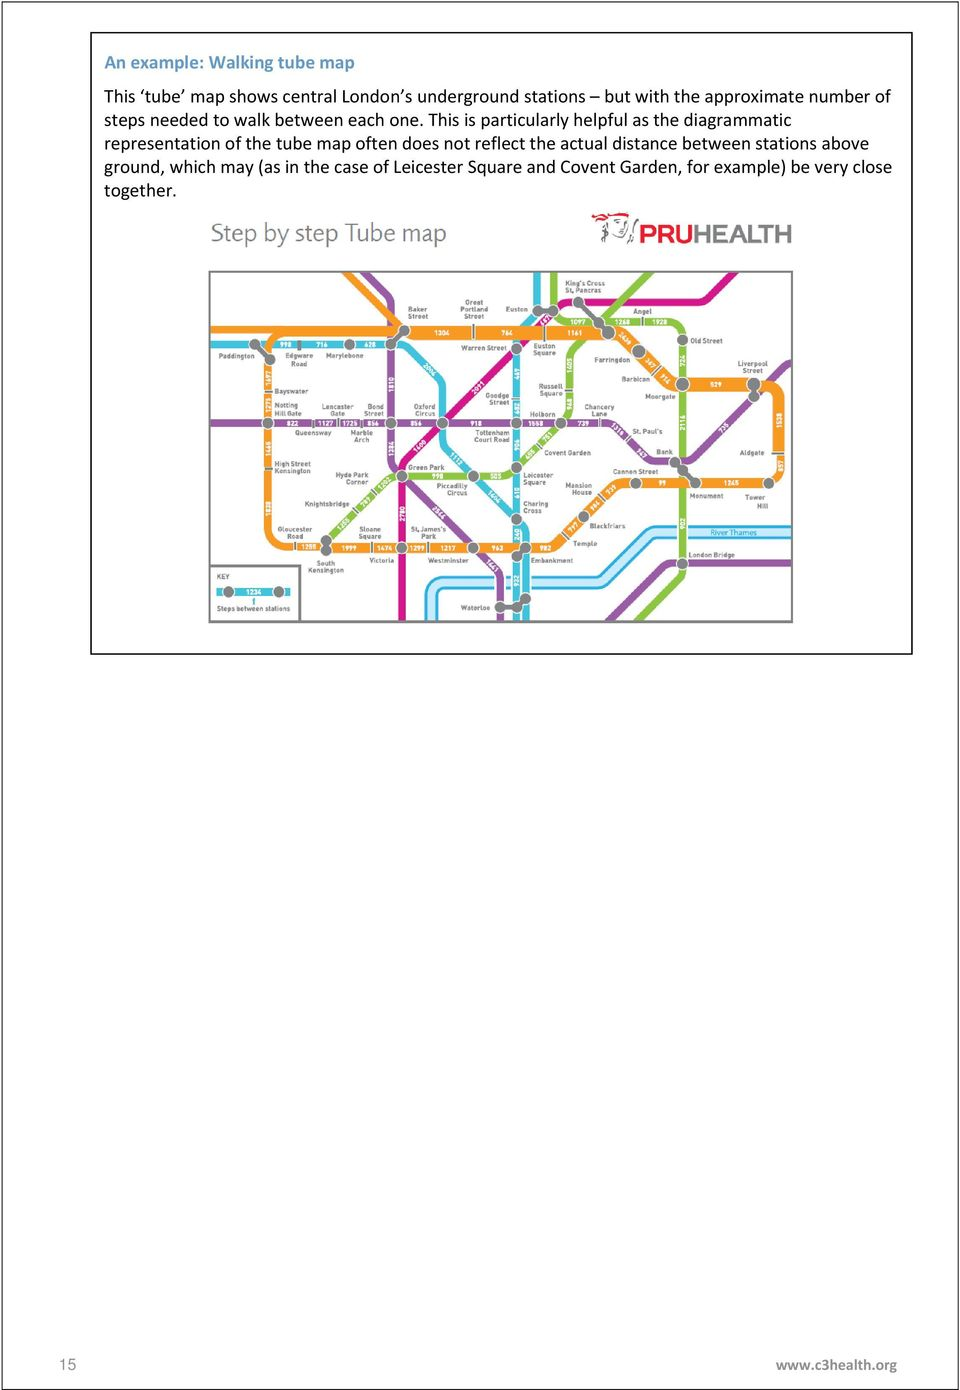 This is particularly helpful as the diagrammatic representation of the tube map often does not reflect the